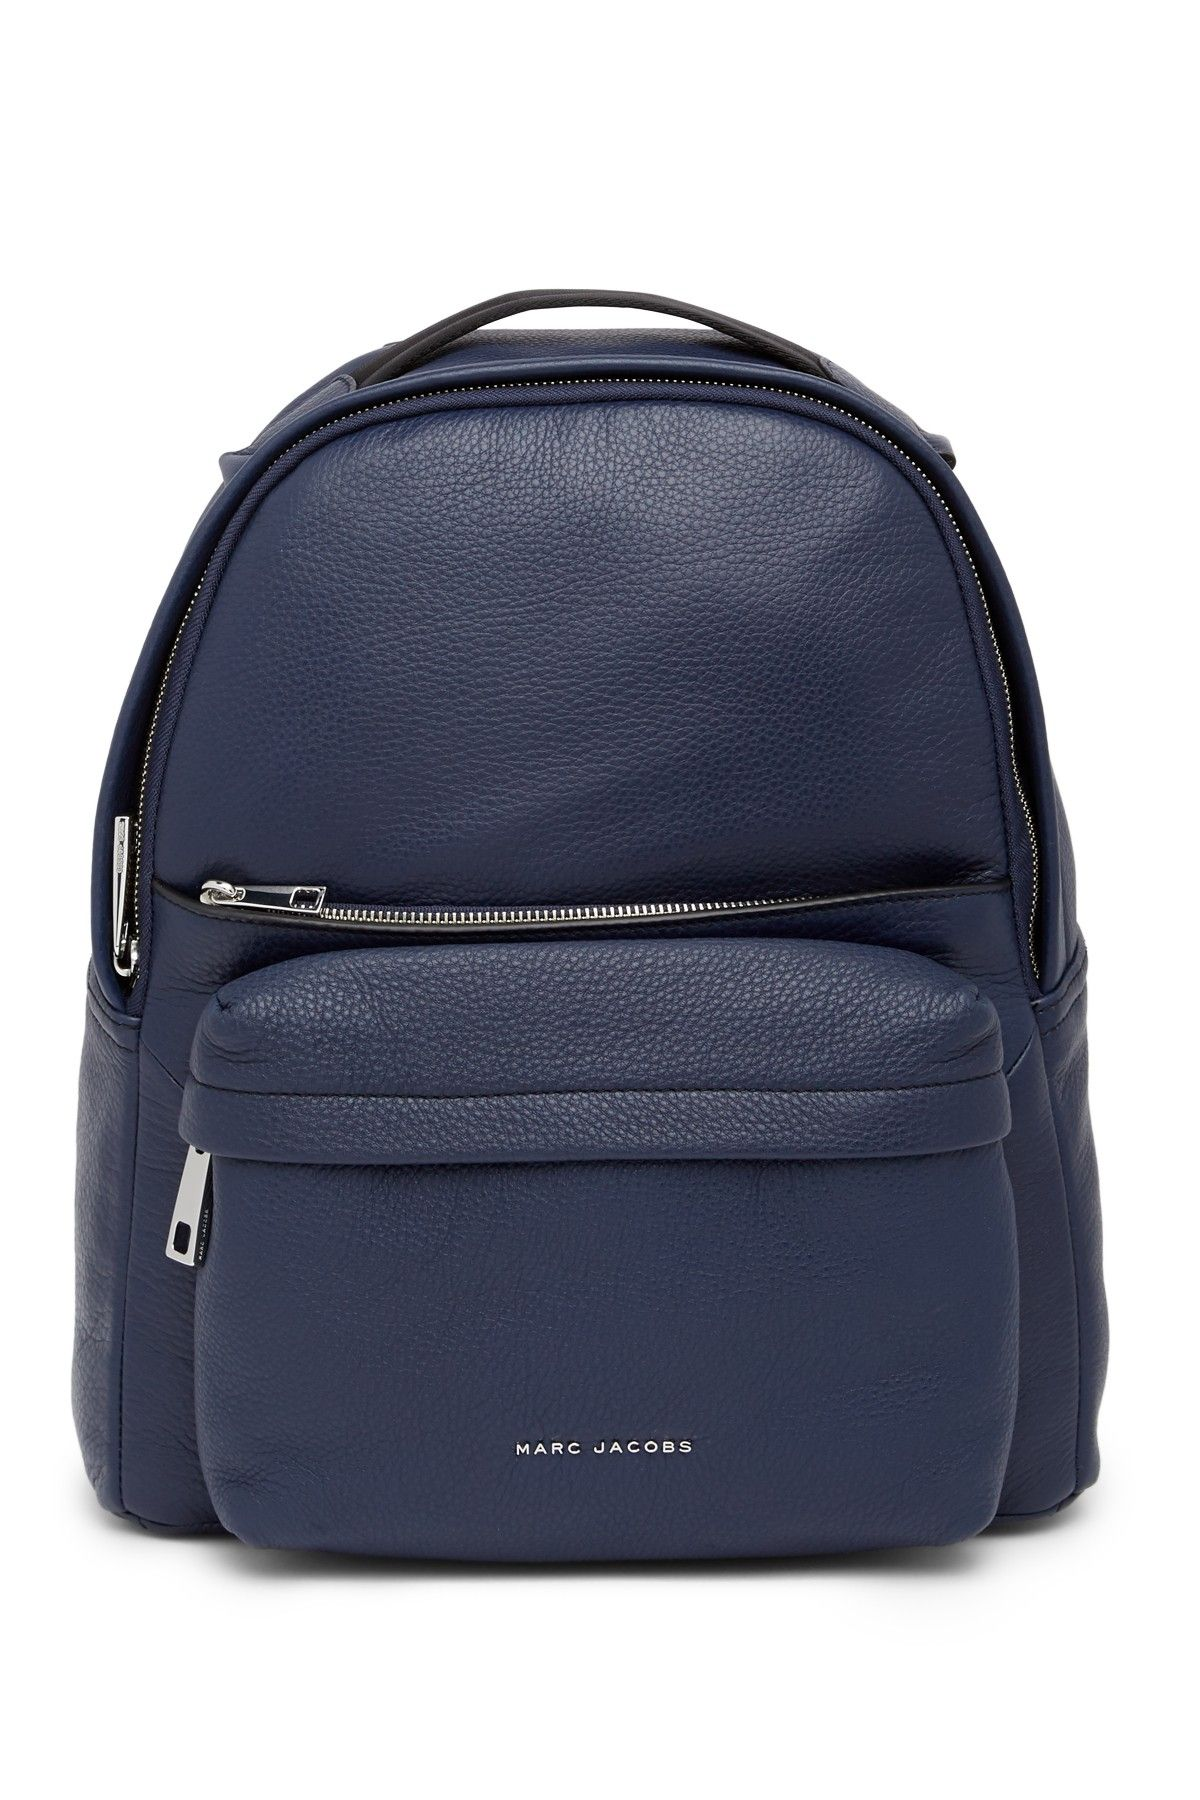 e4a02619da13 Marc Jacobs - Varsity Pack Large Leather Backpack. Free Shipping on orders  over  100.